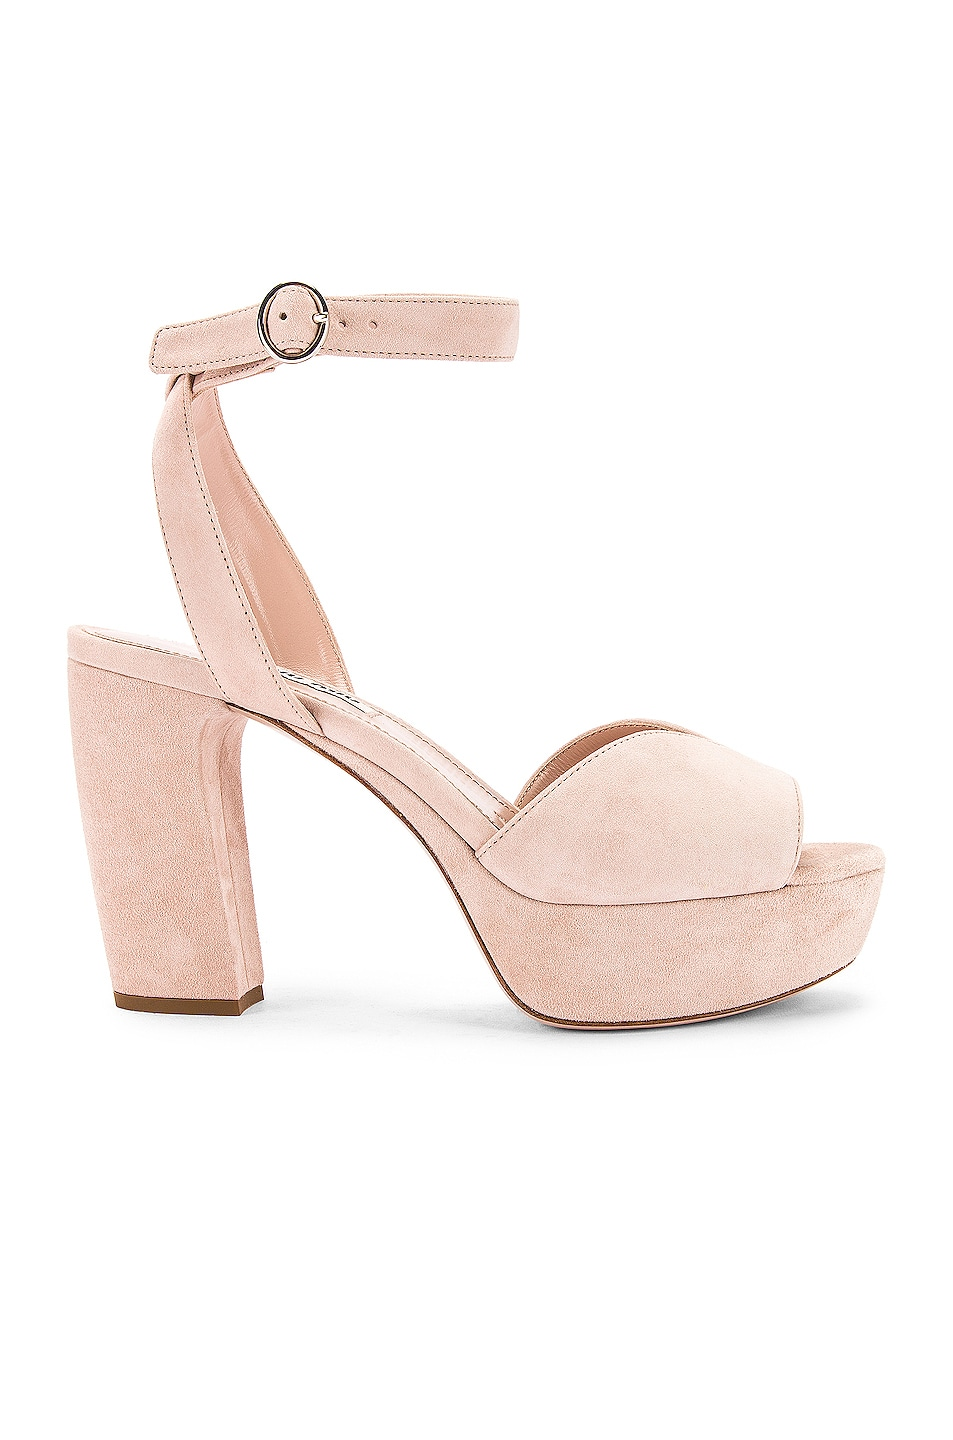 Image 1 of Miu Miu Platform Ankle Strap Sandals in Nude